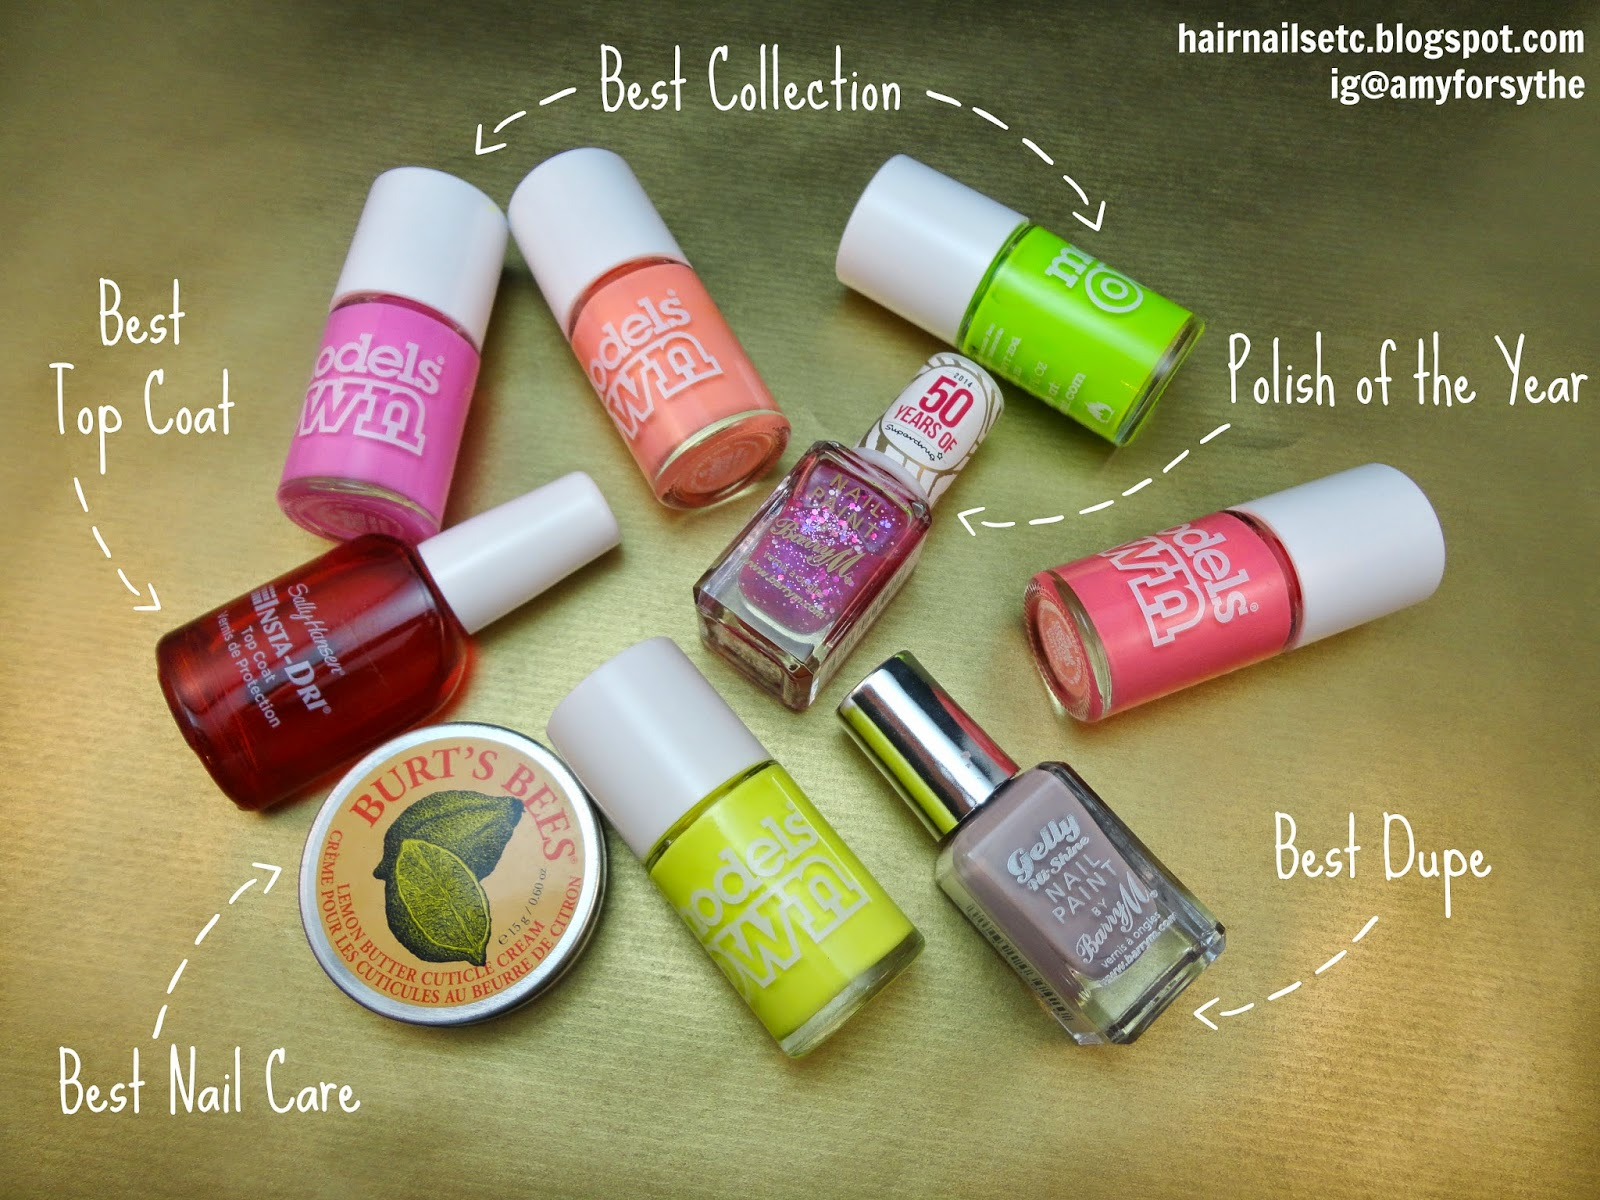 nail polish, 2014, Barry M, Models Own, Sally Hansen, Burt's Bees Cuticle Cream